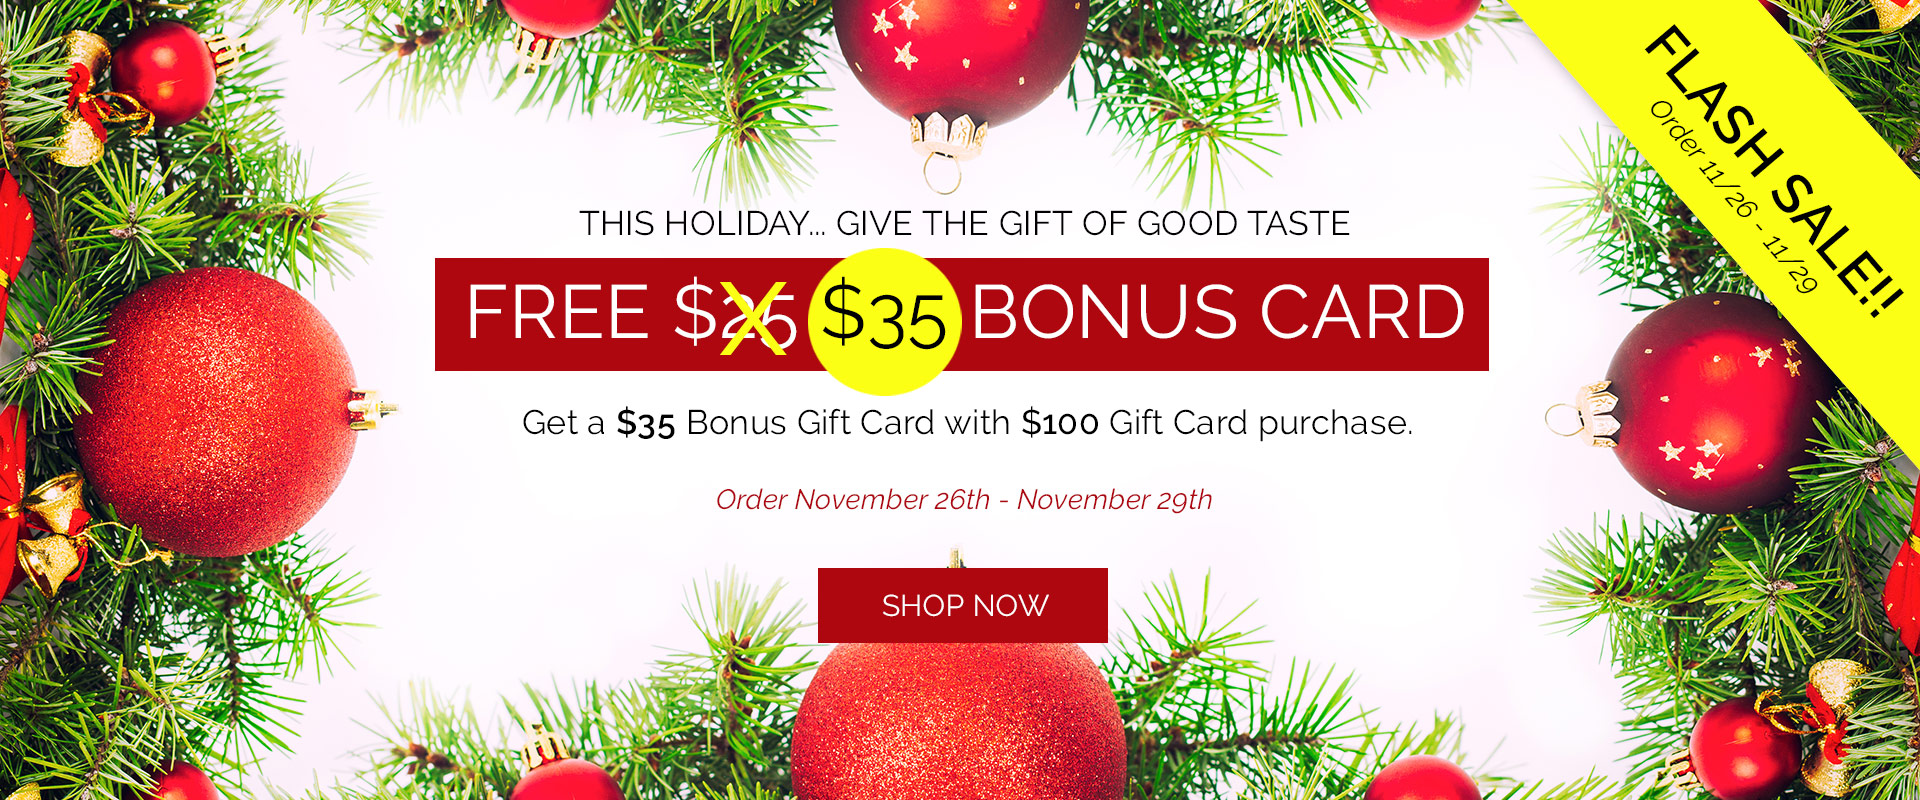 Give the Gift of Good Taste.  Get $35 Bonus Card with $100 gift card purchase.  Click to buy online.